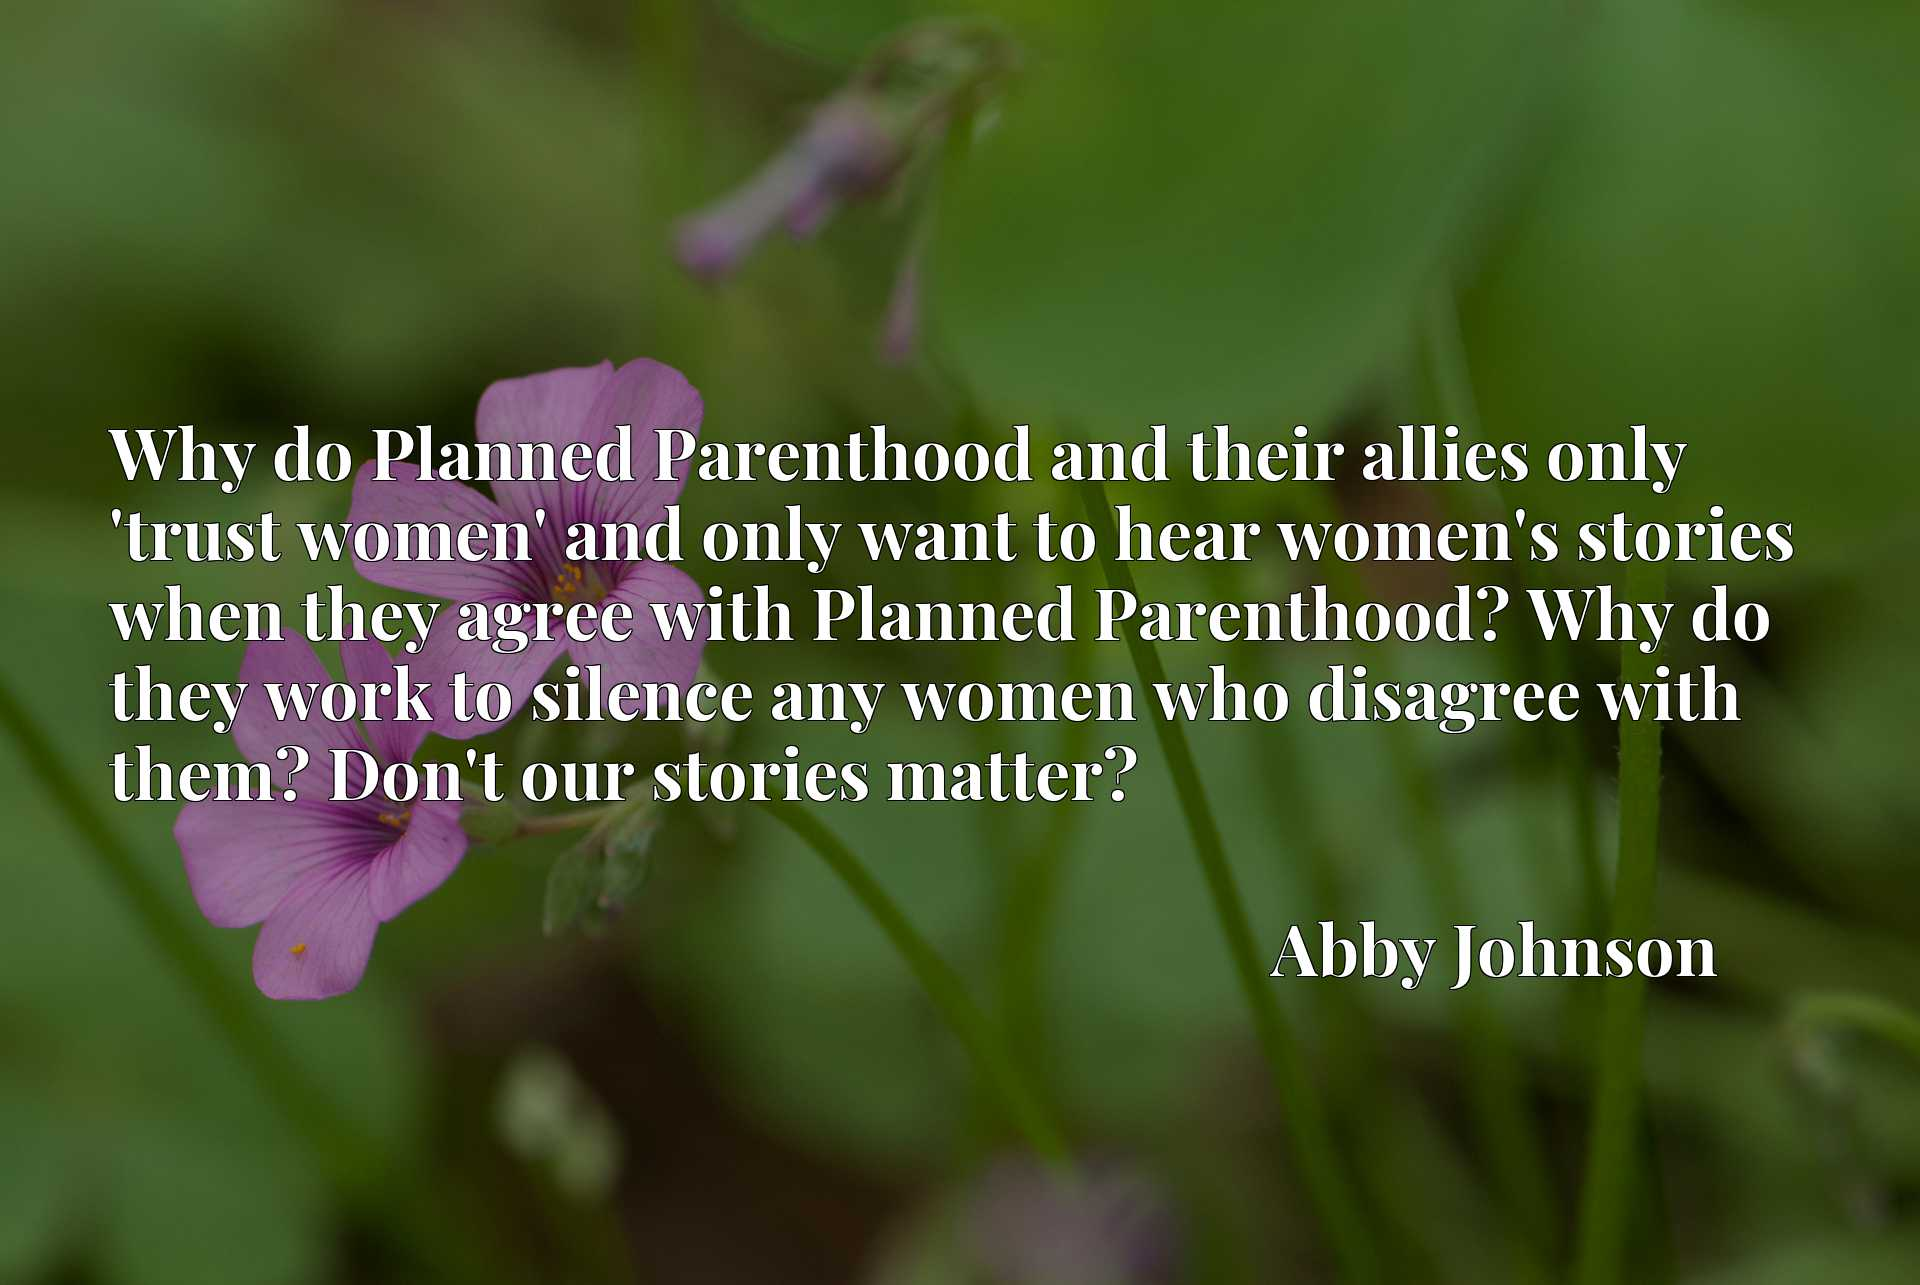 Why do Planned Parenthood and their allies only 'trust women' and only want to hear women's stories when they agree with Planned Parenthood? Why do they work to silence any women who disagree with them? Don't our stories matter?